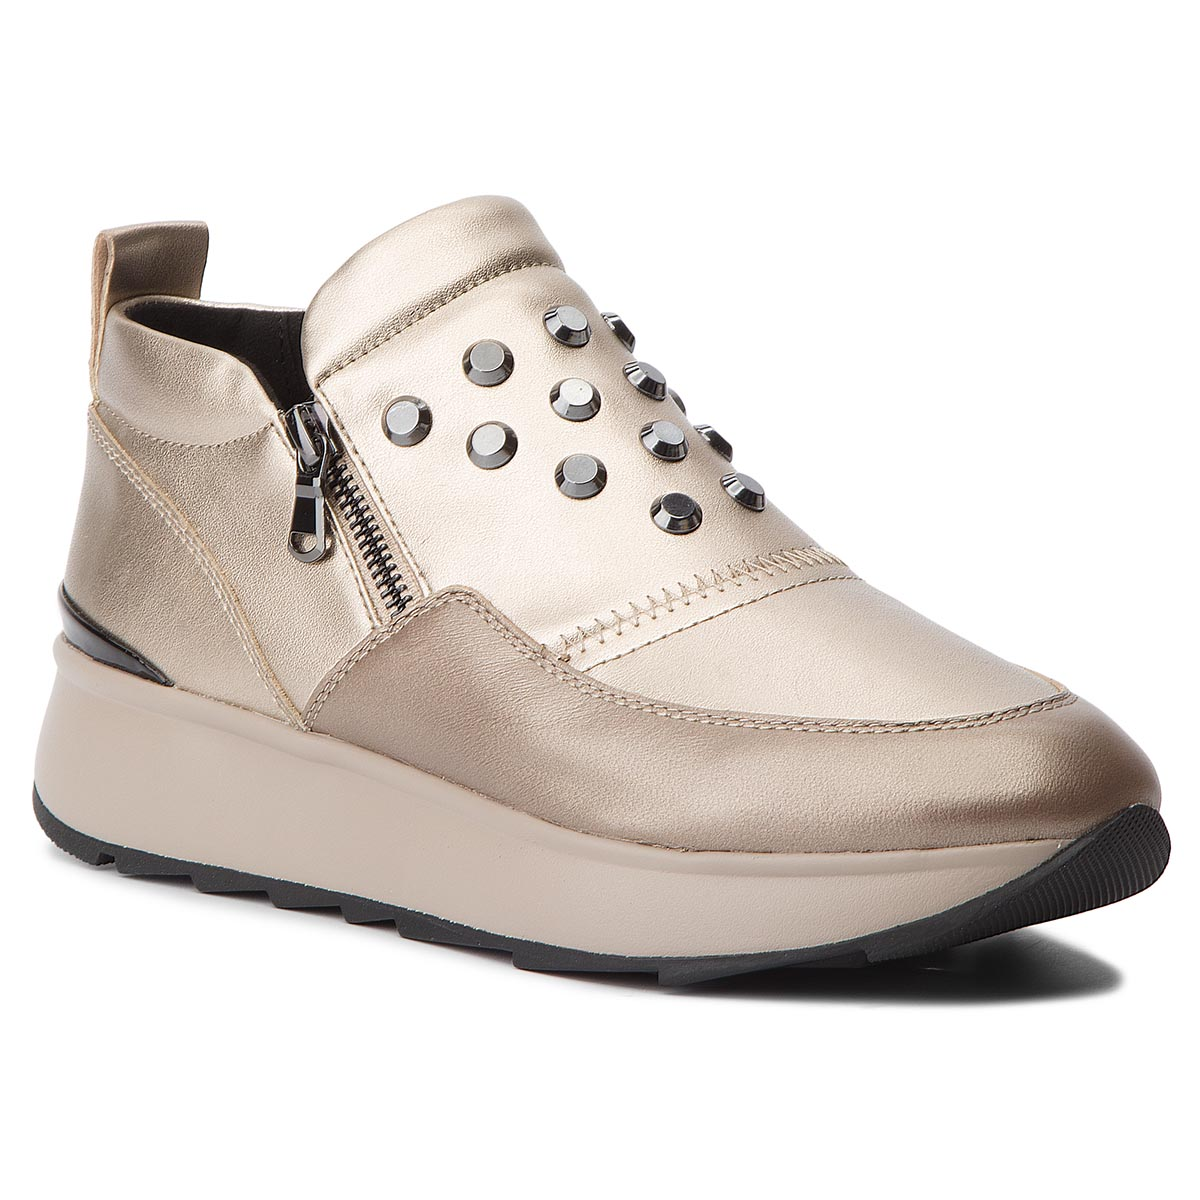 Sneakers GEOX - D Gendry A D745TA 0BVNF CB500 Champagne